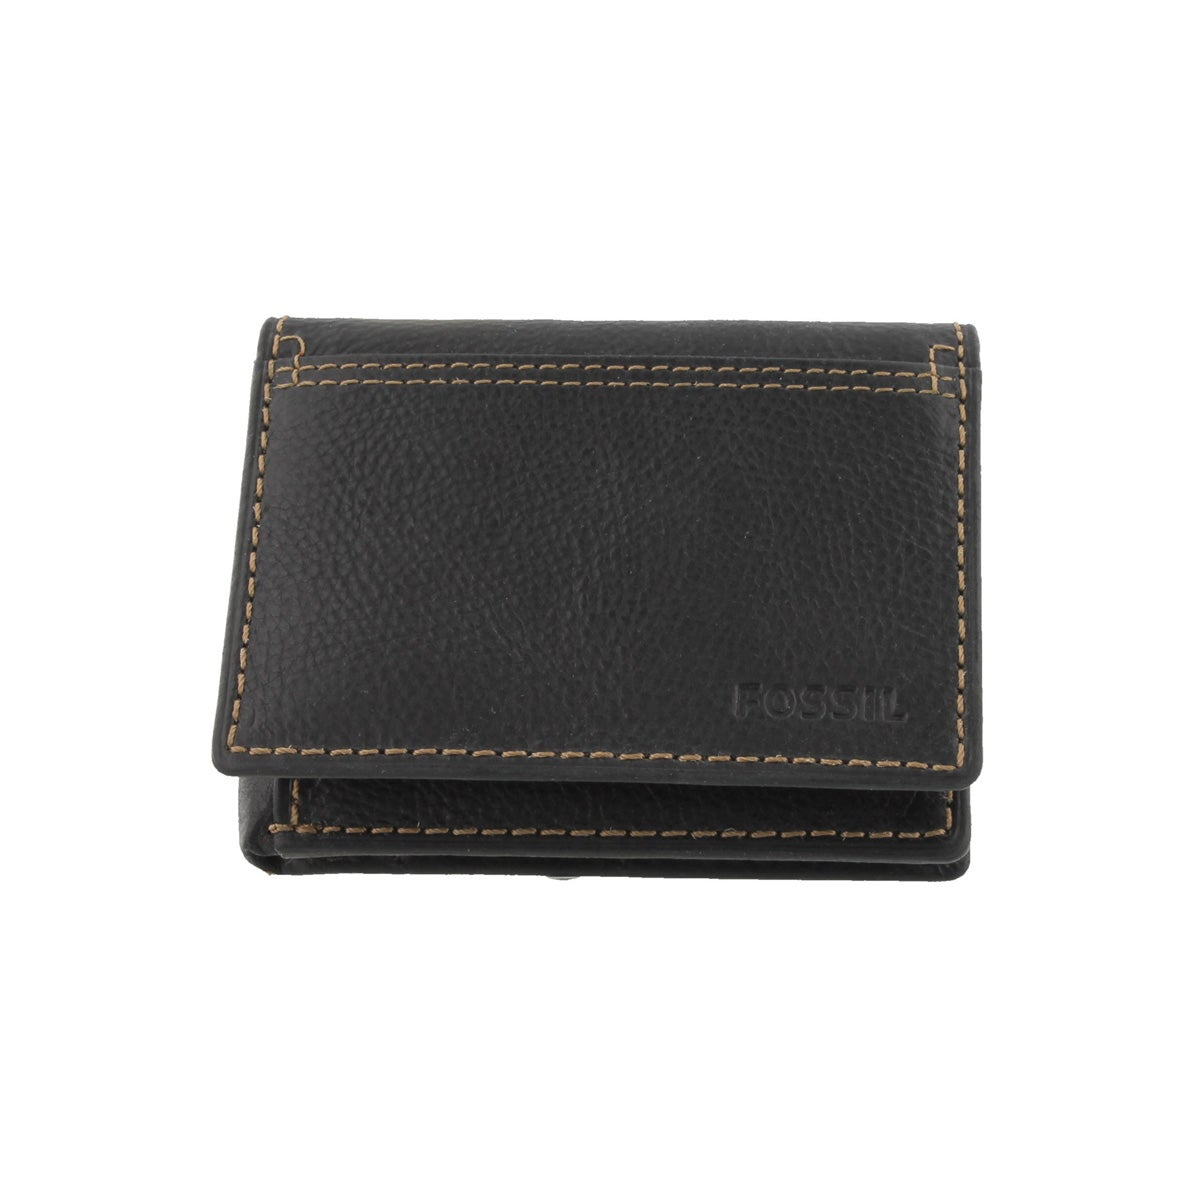 Mns Bradley Execufold blk leather wallet